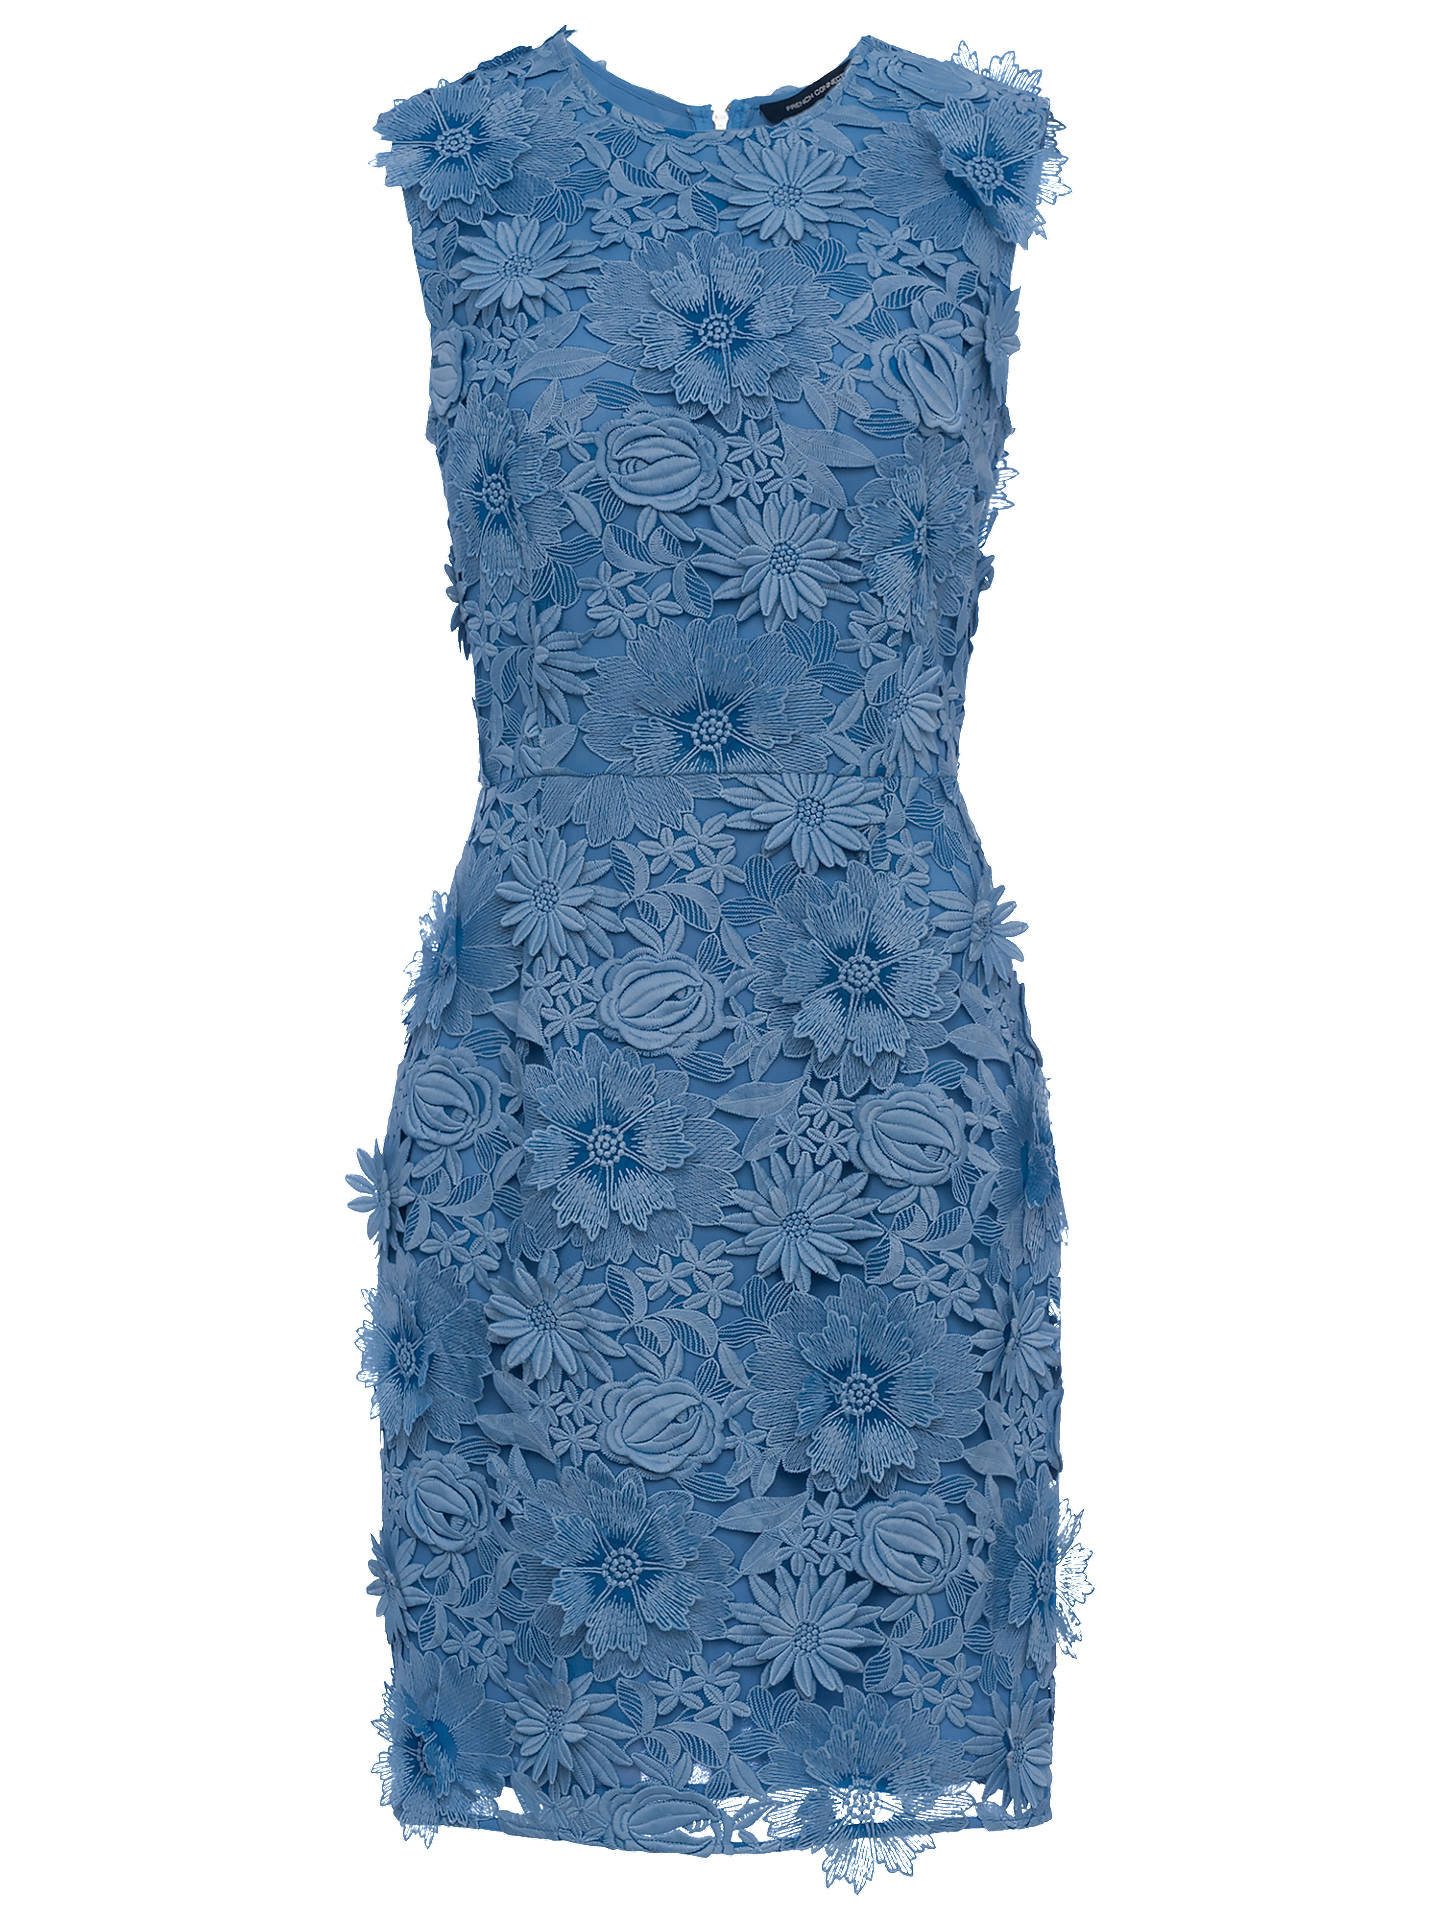 29a4f518958 Buy French Connection Manzoni Lace Dress, Meru Blue, 6 Online at  johnlewis.com ...